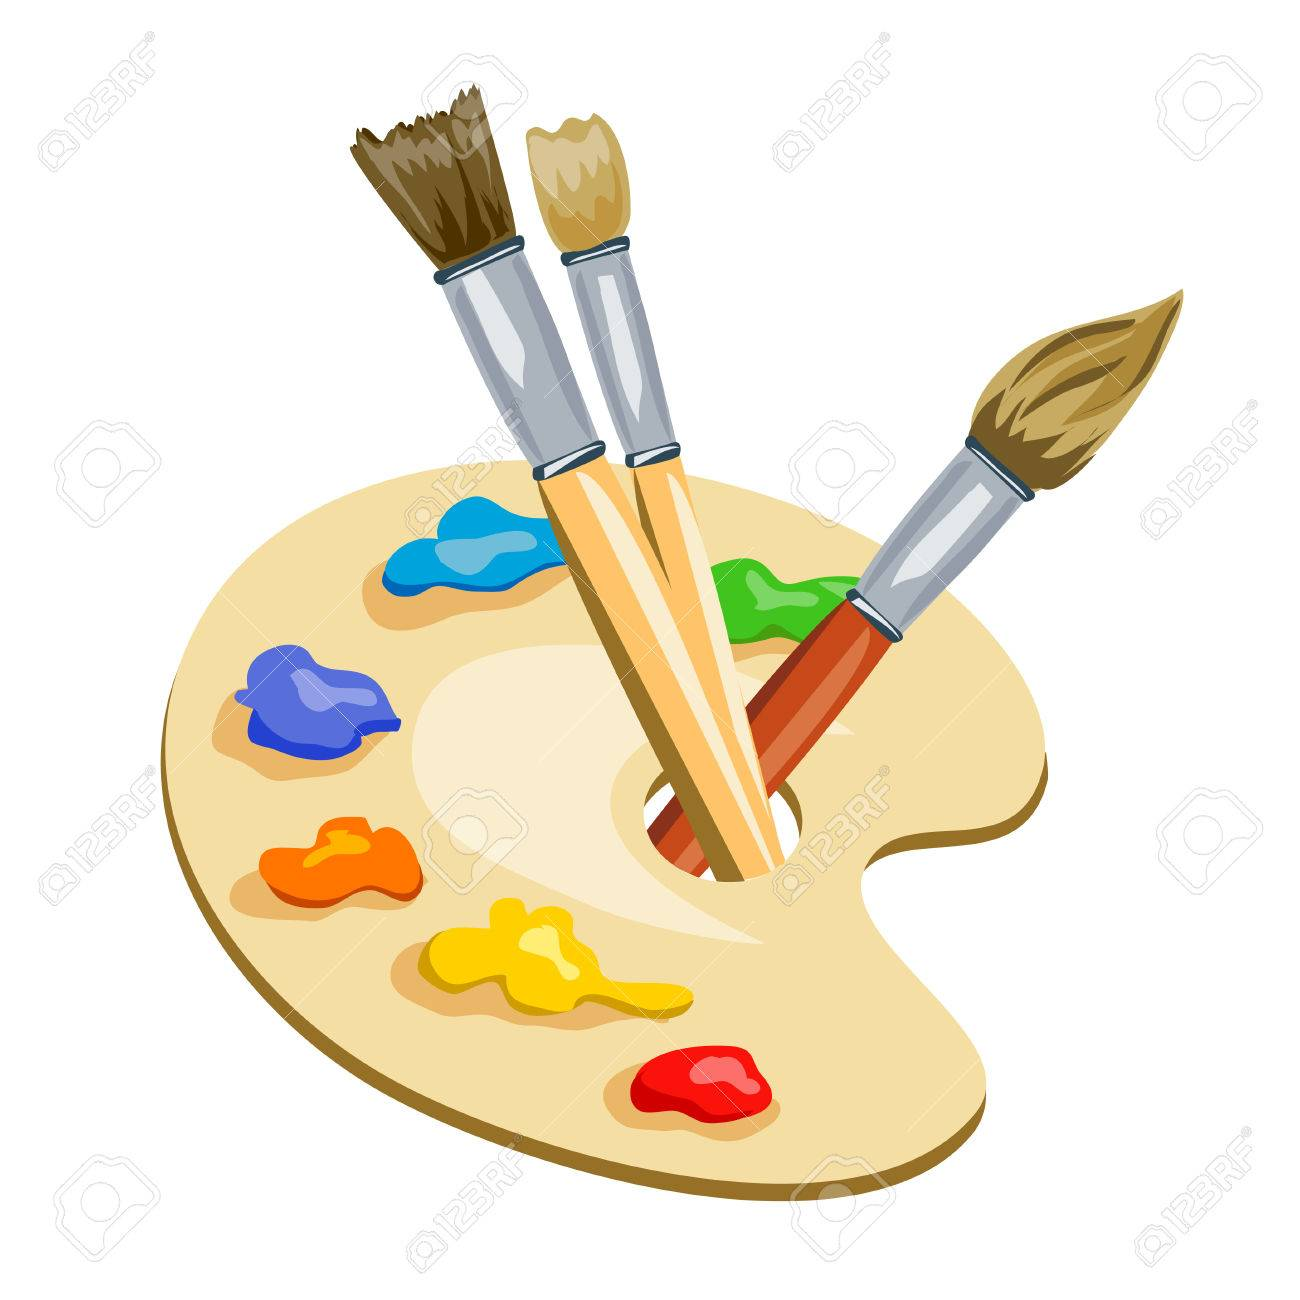 brushes and palette with paints. vector illustration Standard-Bild - 32518439